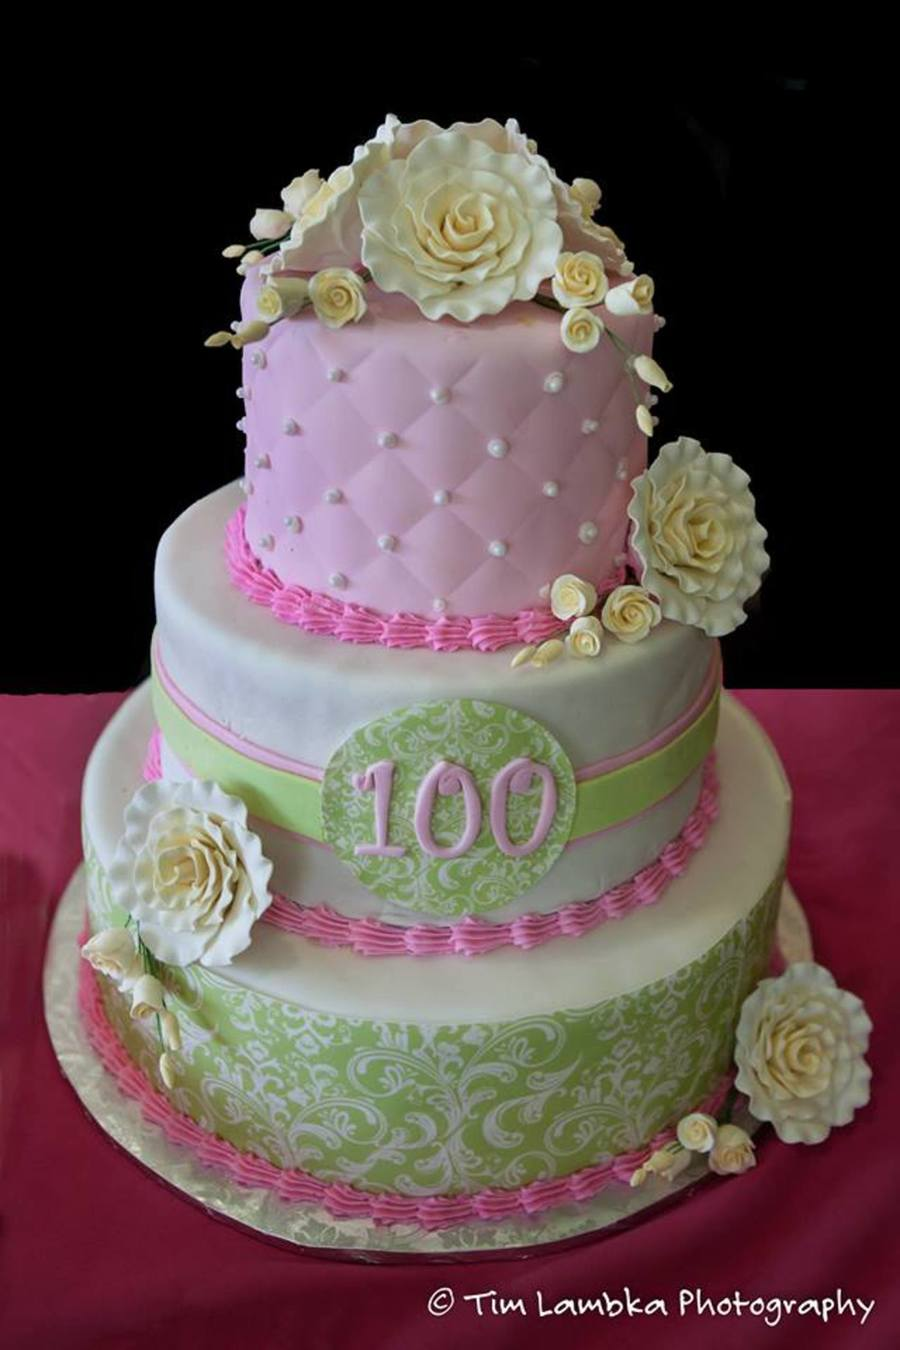 A 3 Tier Cake To Celebrate My Great Grandmothers 100Th Birthday 6912 Covered In Fondant Damask